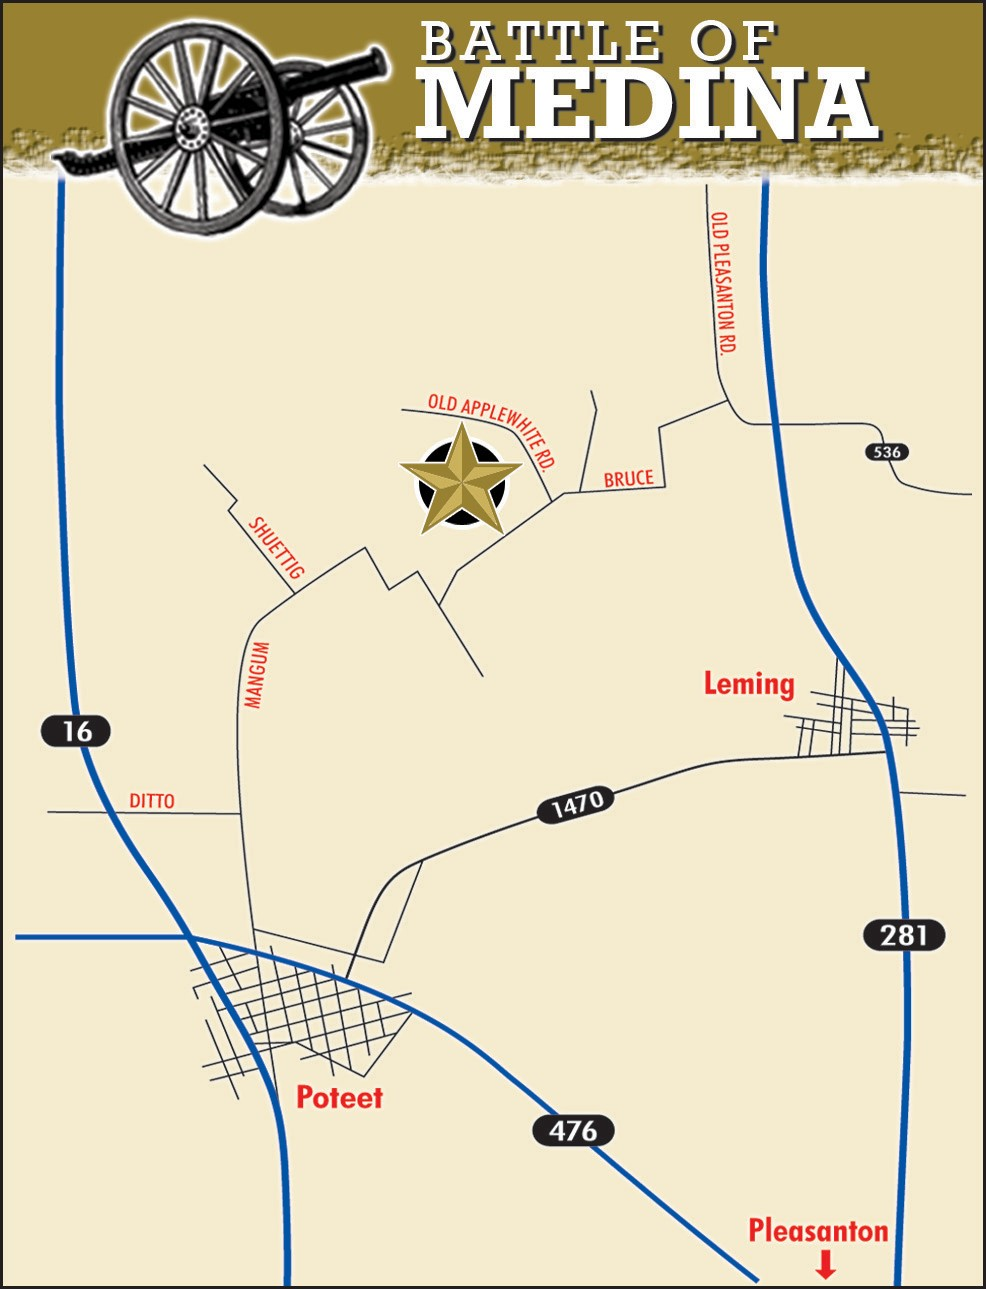 A ceremony honoring the 201st anniversary of the Battle of the Medina will be held next Saturday, August 16 at the site at 10 a.m. A seminar will be held at the Pleasanton Church of Christ.